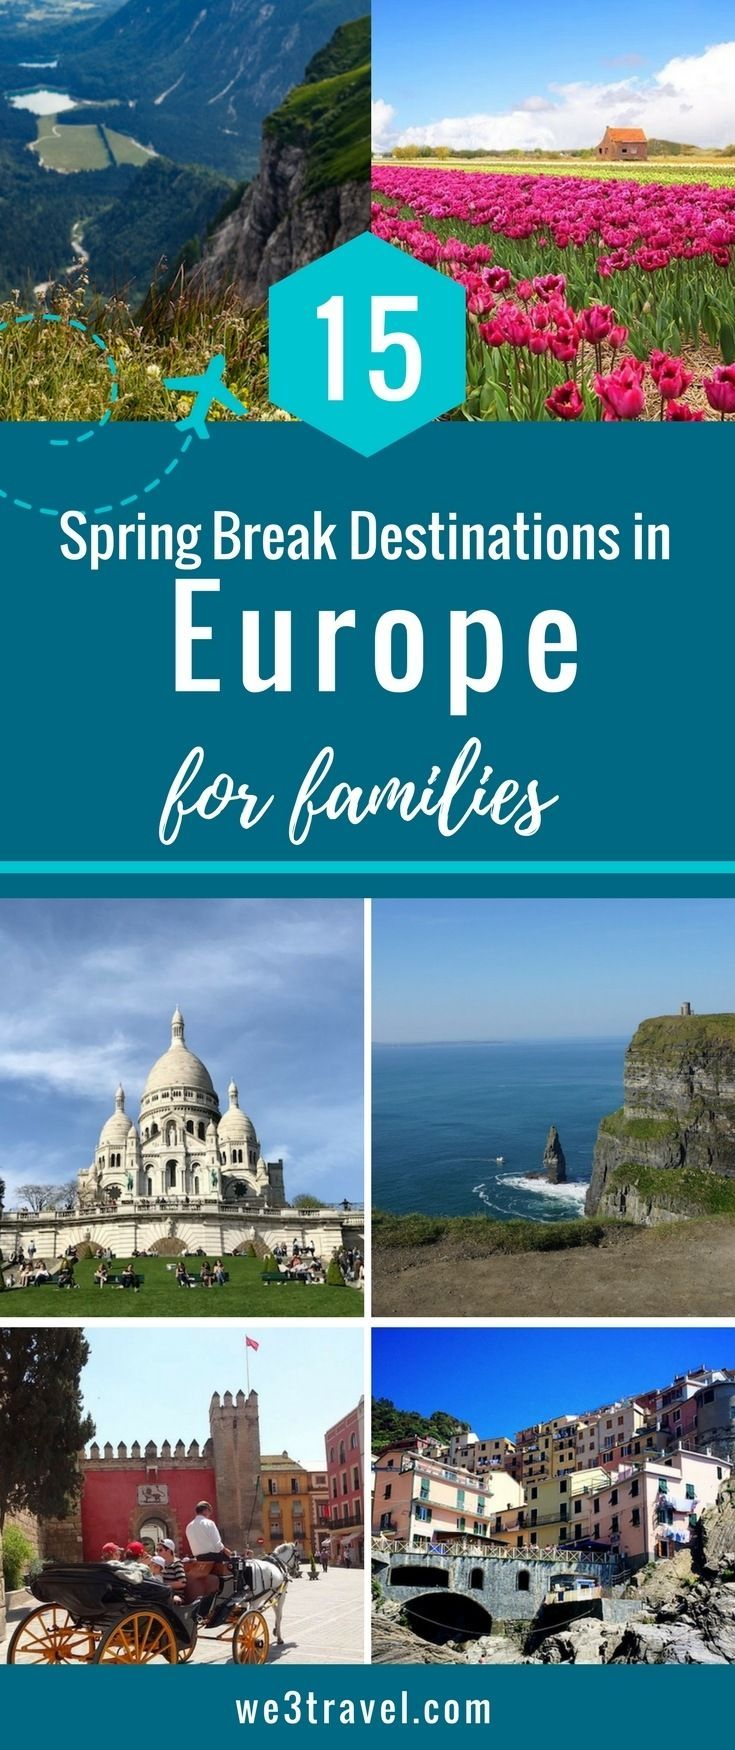 15 european spring break destinations for families | italy travel